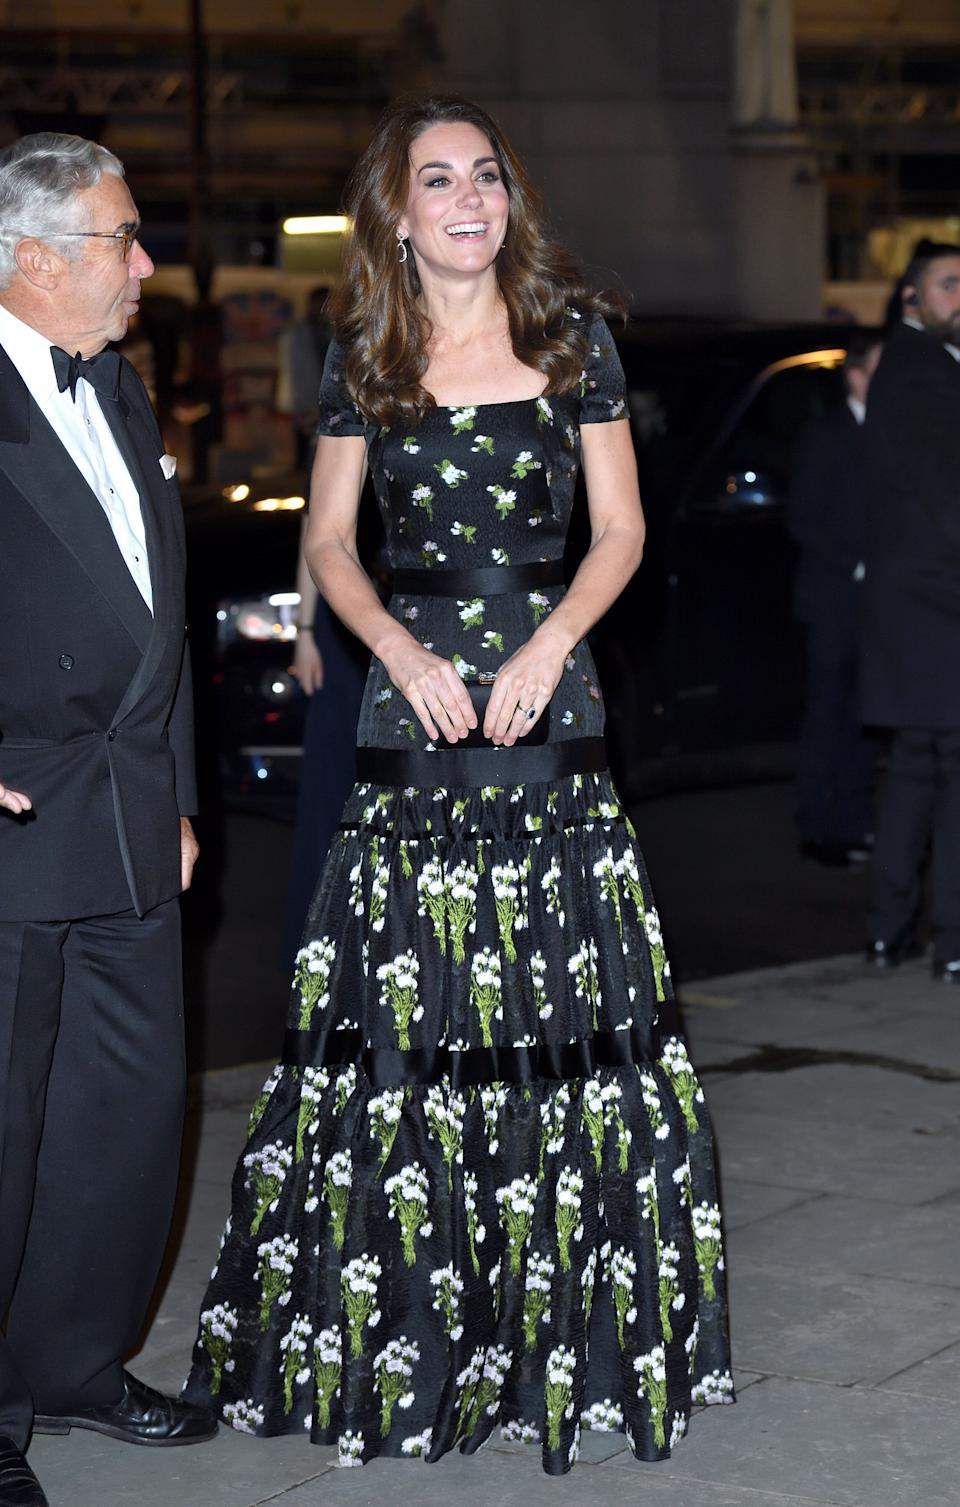 The duchess attends the Portrait Gala 2019 at London's National Portrait Gallery on March 12.